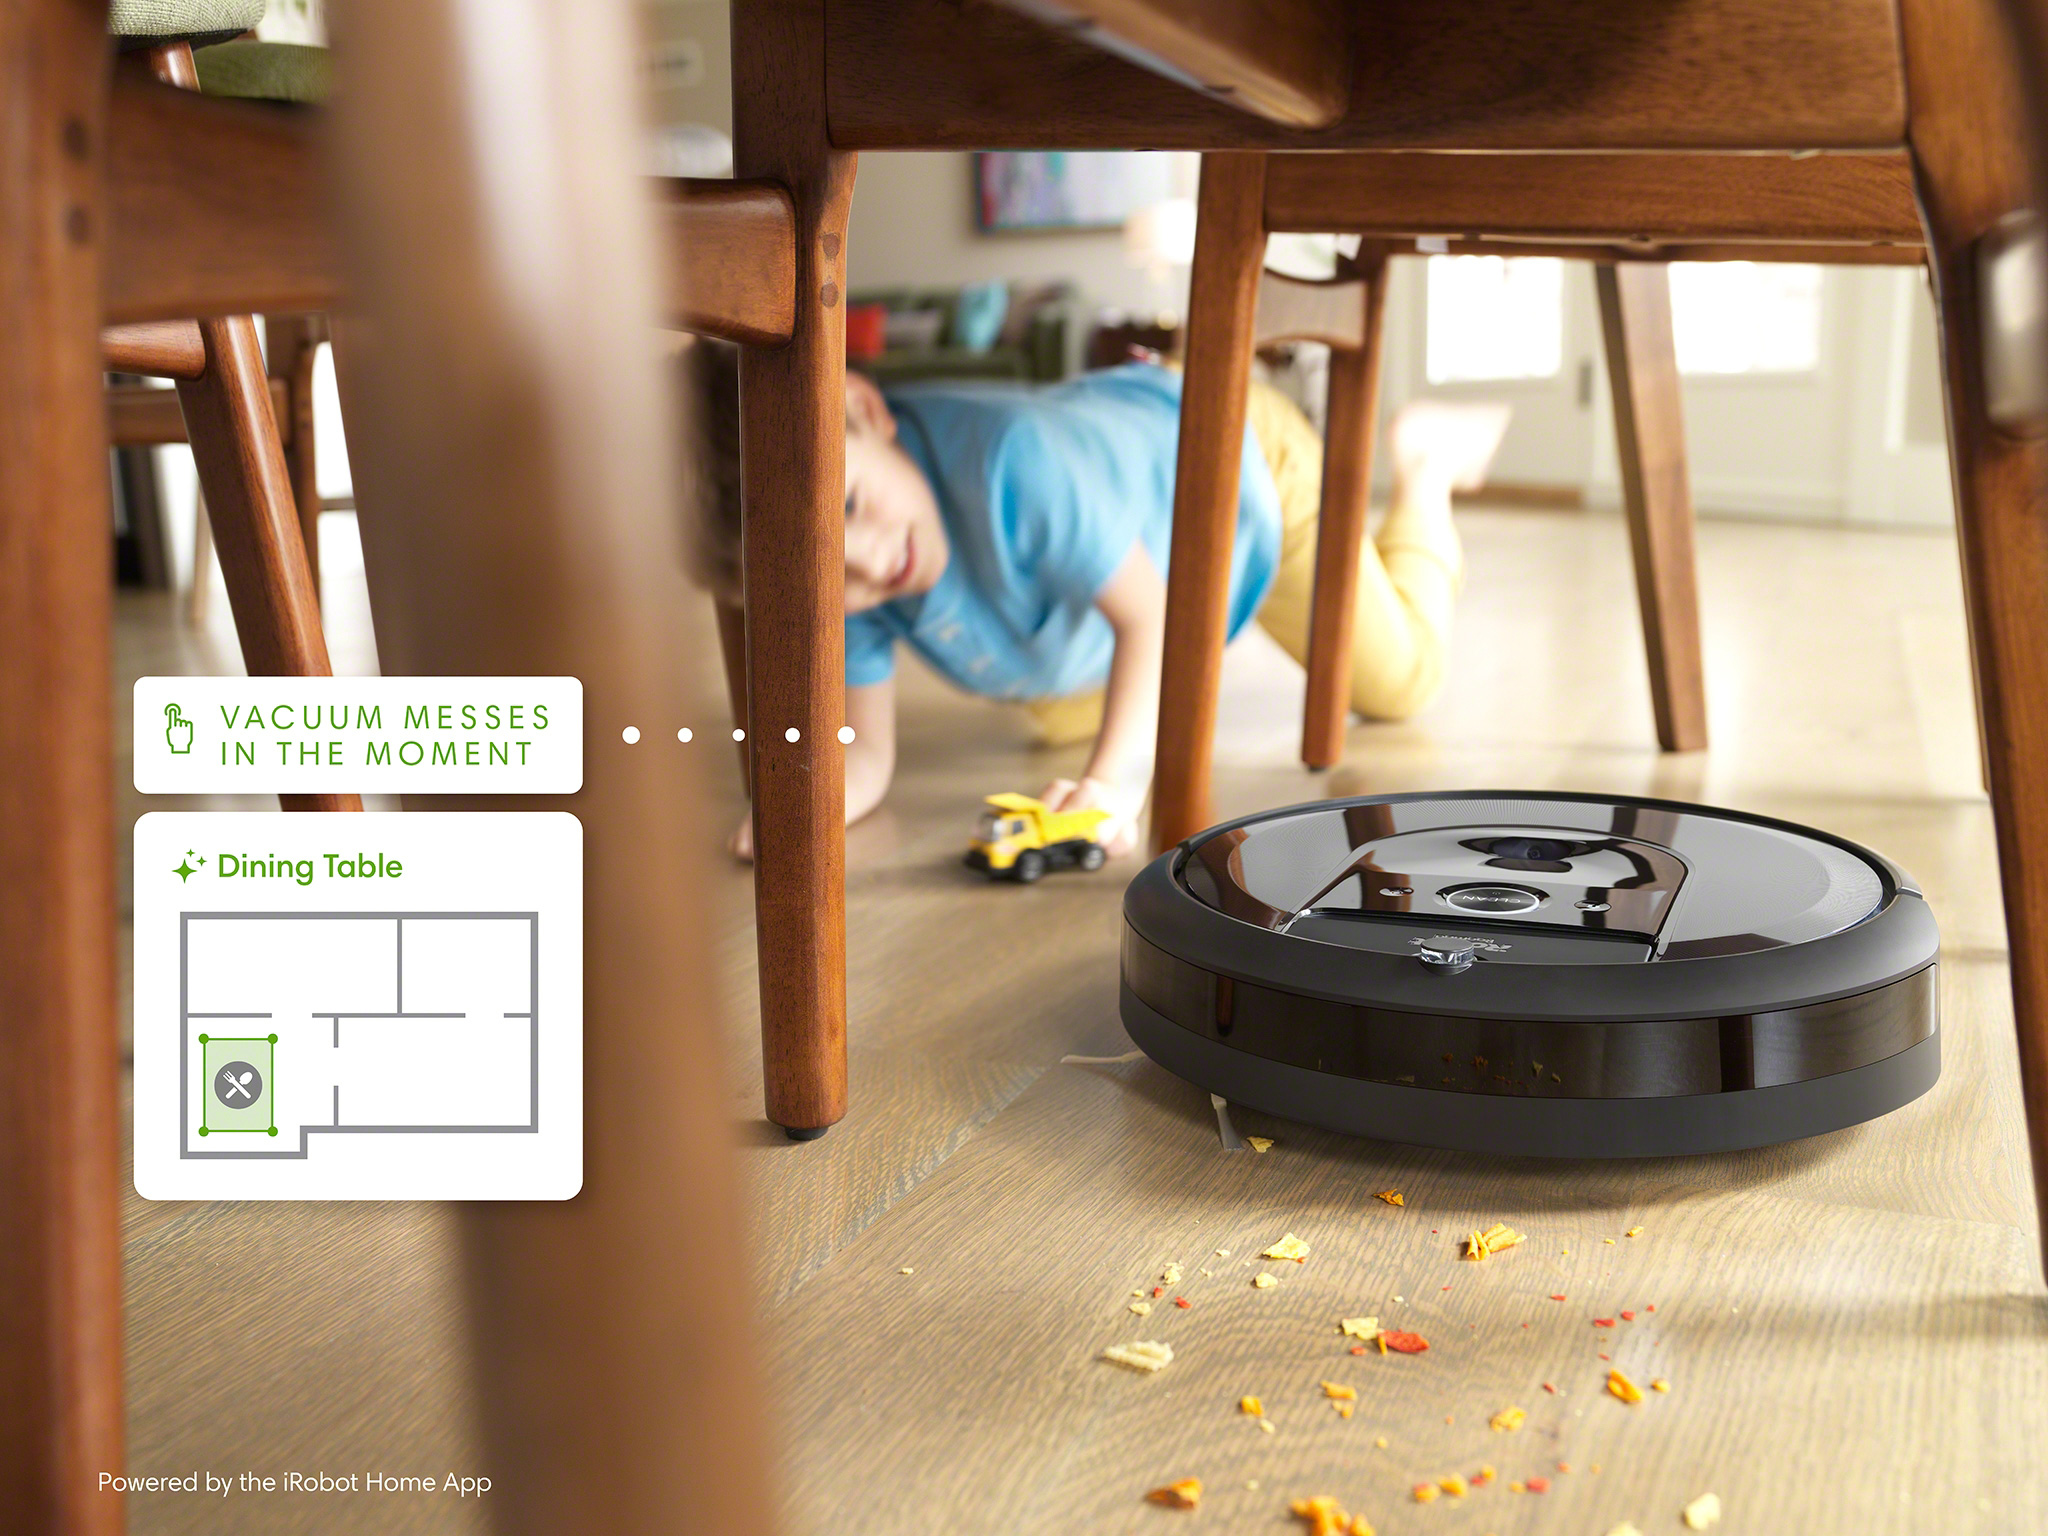 Send your Roomba robot vacuum or Braava jet robot mop to clean a mess right where it happens with precision Clean Zones. Roomba robot vacuums and Braava robot mops with Imprint™ Smart Mapping can automatically detect and proactively suggest Clean Zones around specific objects, like tables.